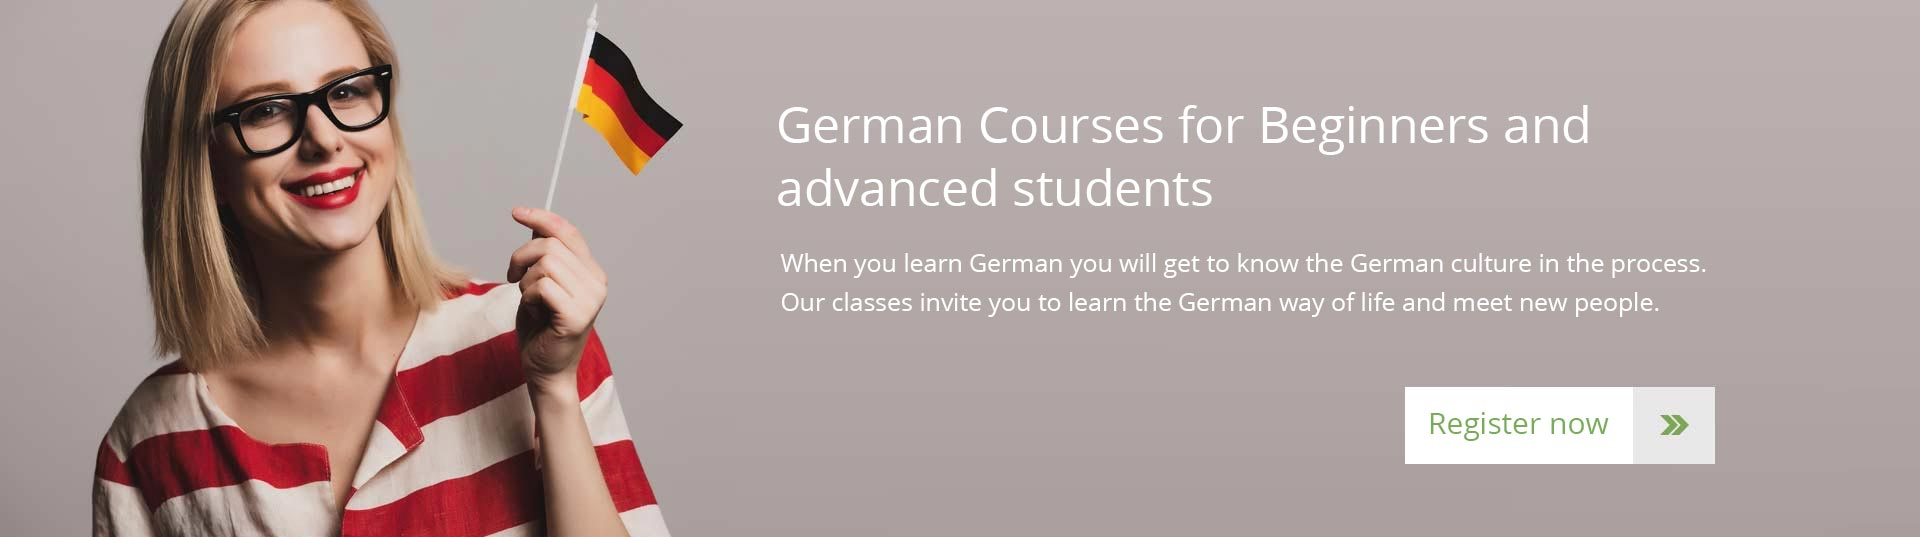 German Courses for Beginners and advanced students